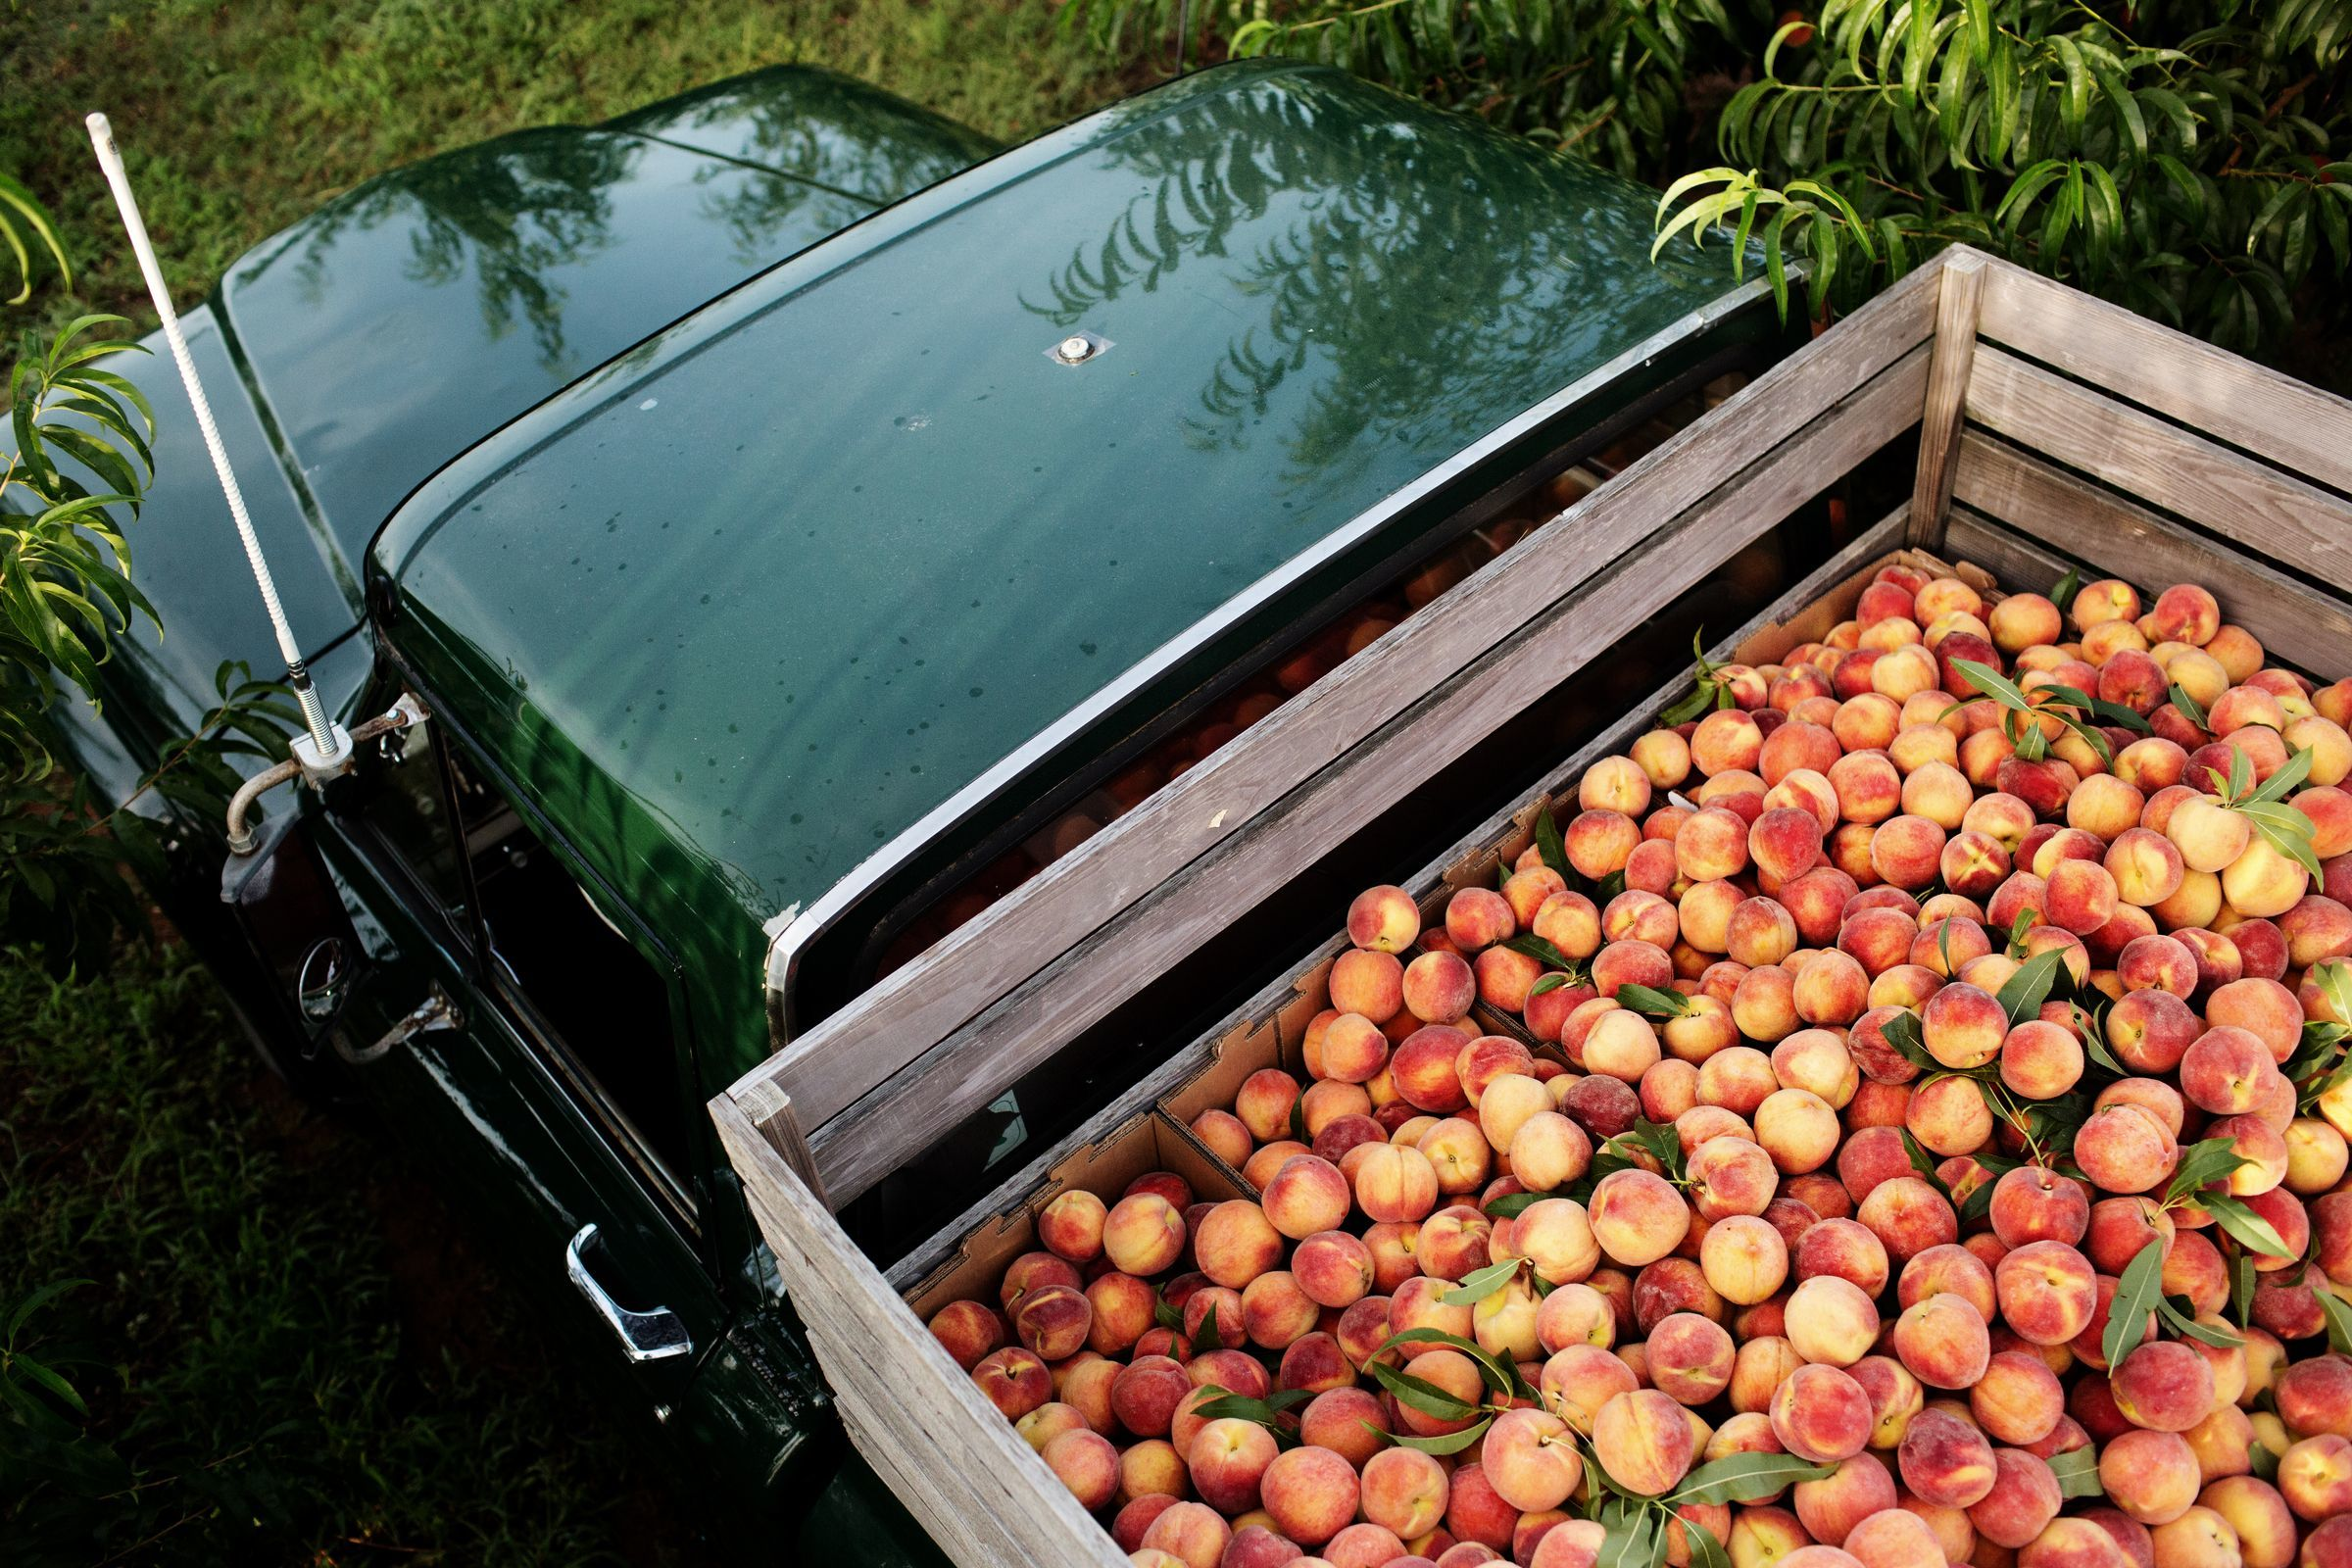 Trucks of ripe Georgia peaches coming to Michigan: Where to find them